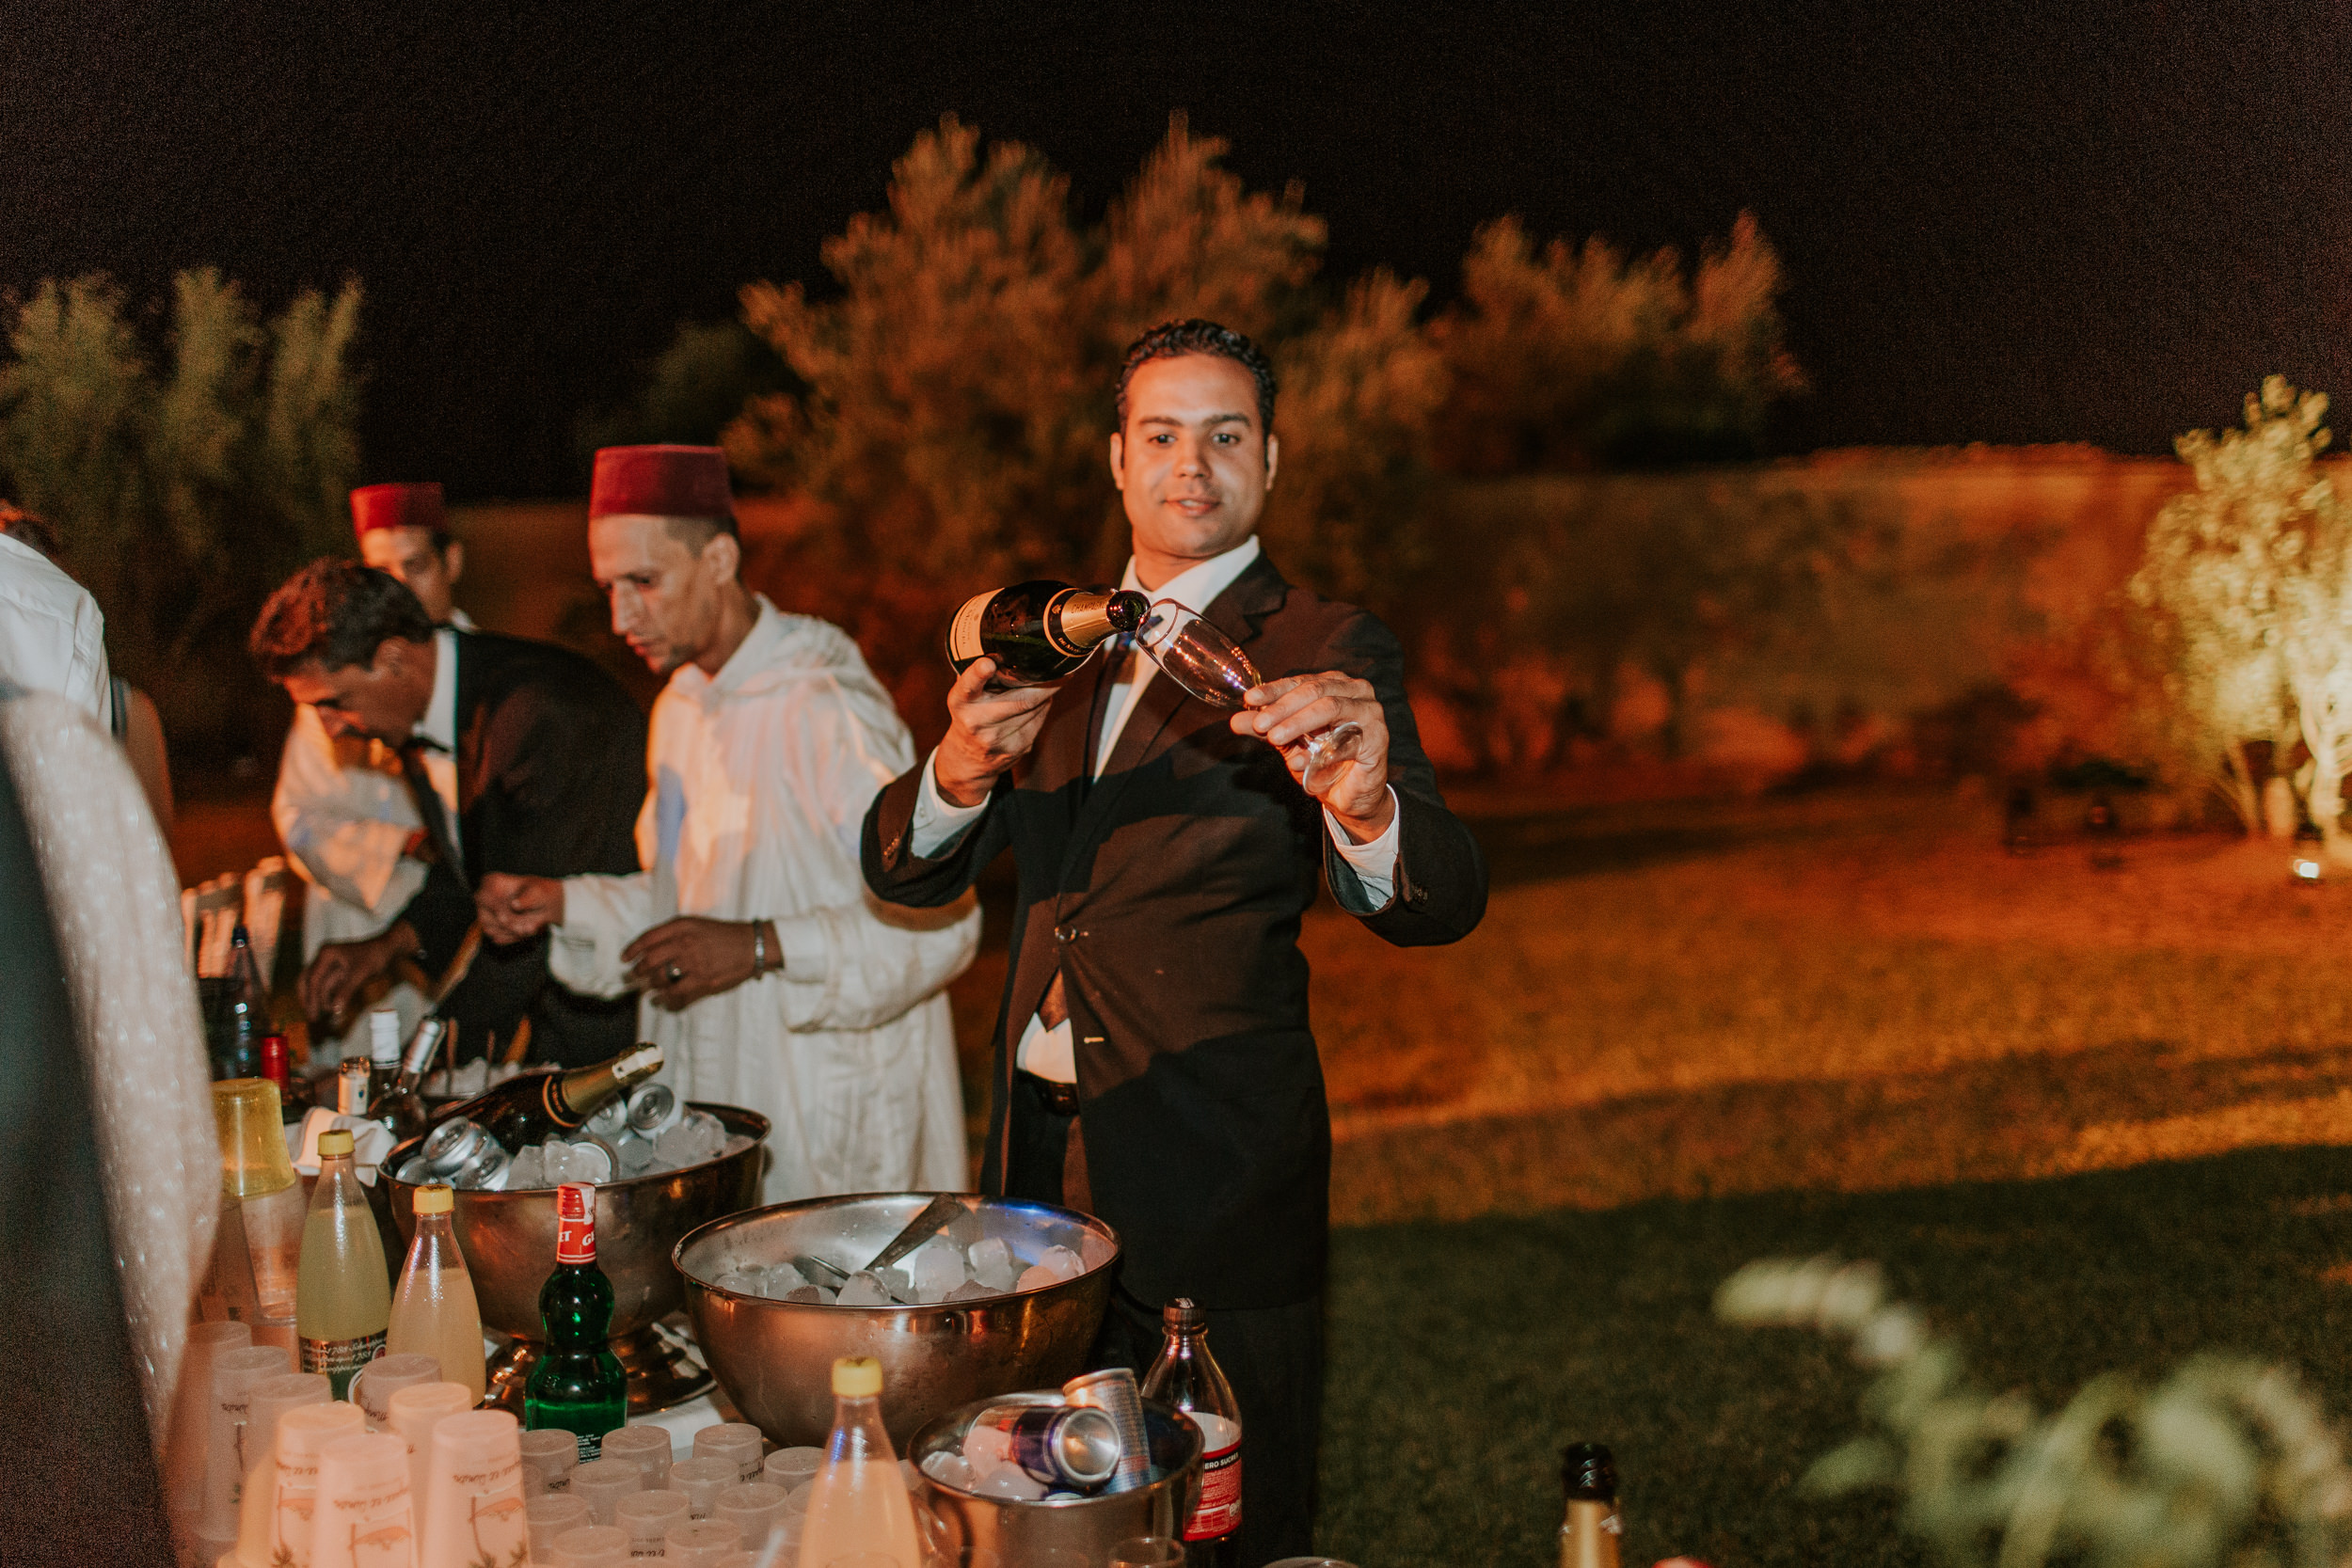 morganedimitri_davidmaire_marrakech_destinationwedding-276.jpg